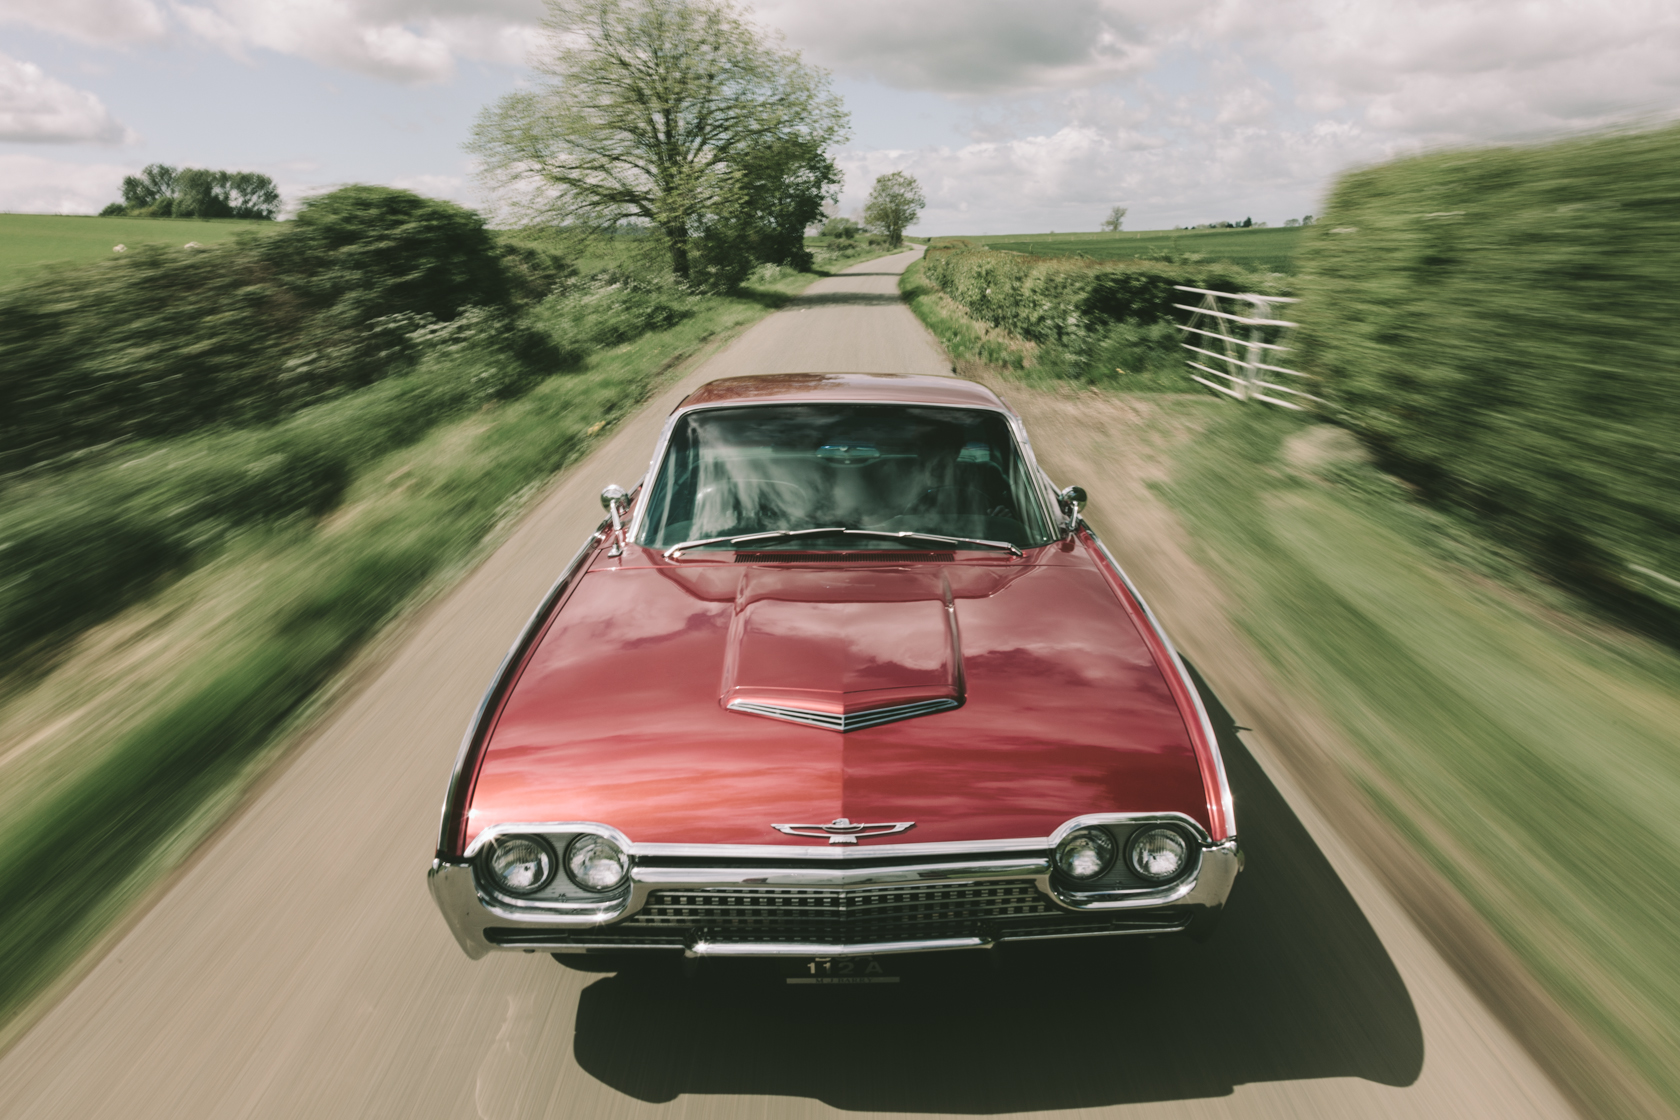 cherry red ford thunderbird driving through countryside